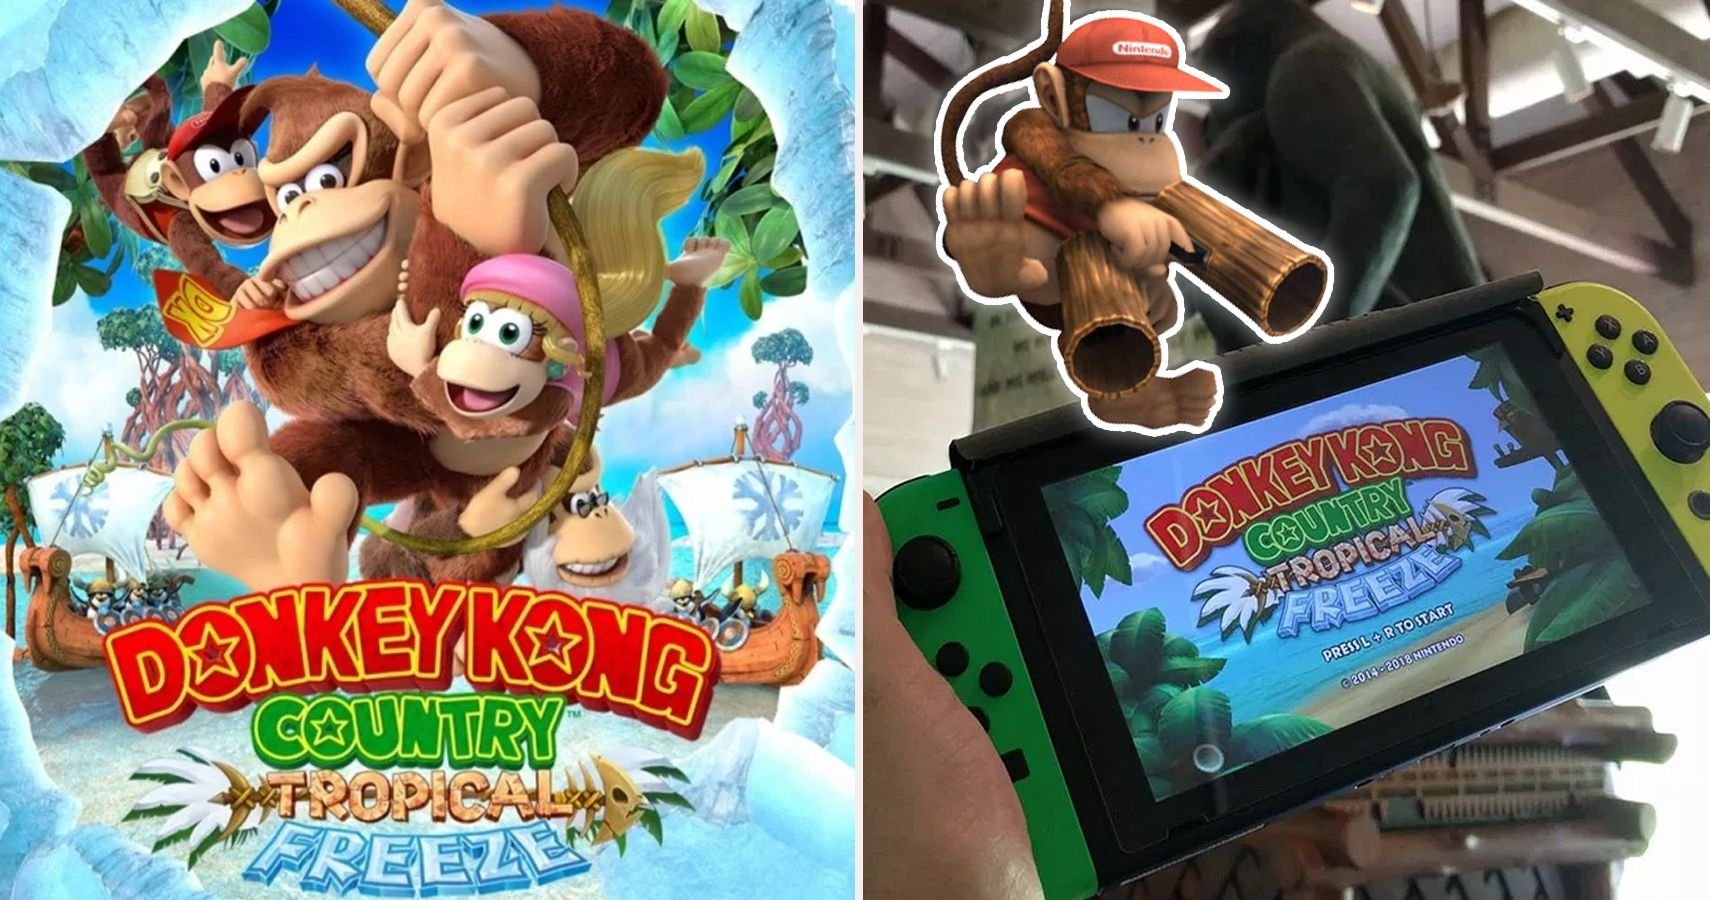 The 25 Worst Things About Donkey Kong: Tropical Freeze For Nintendo